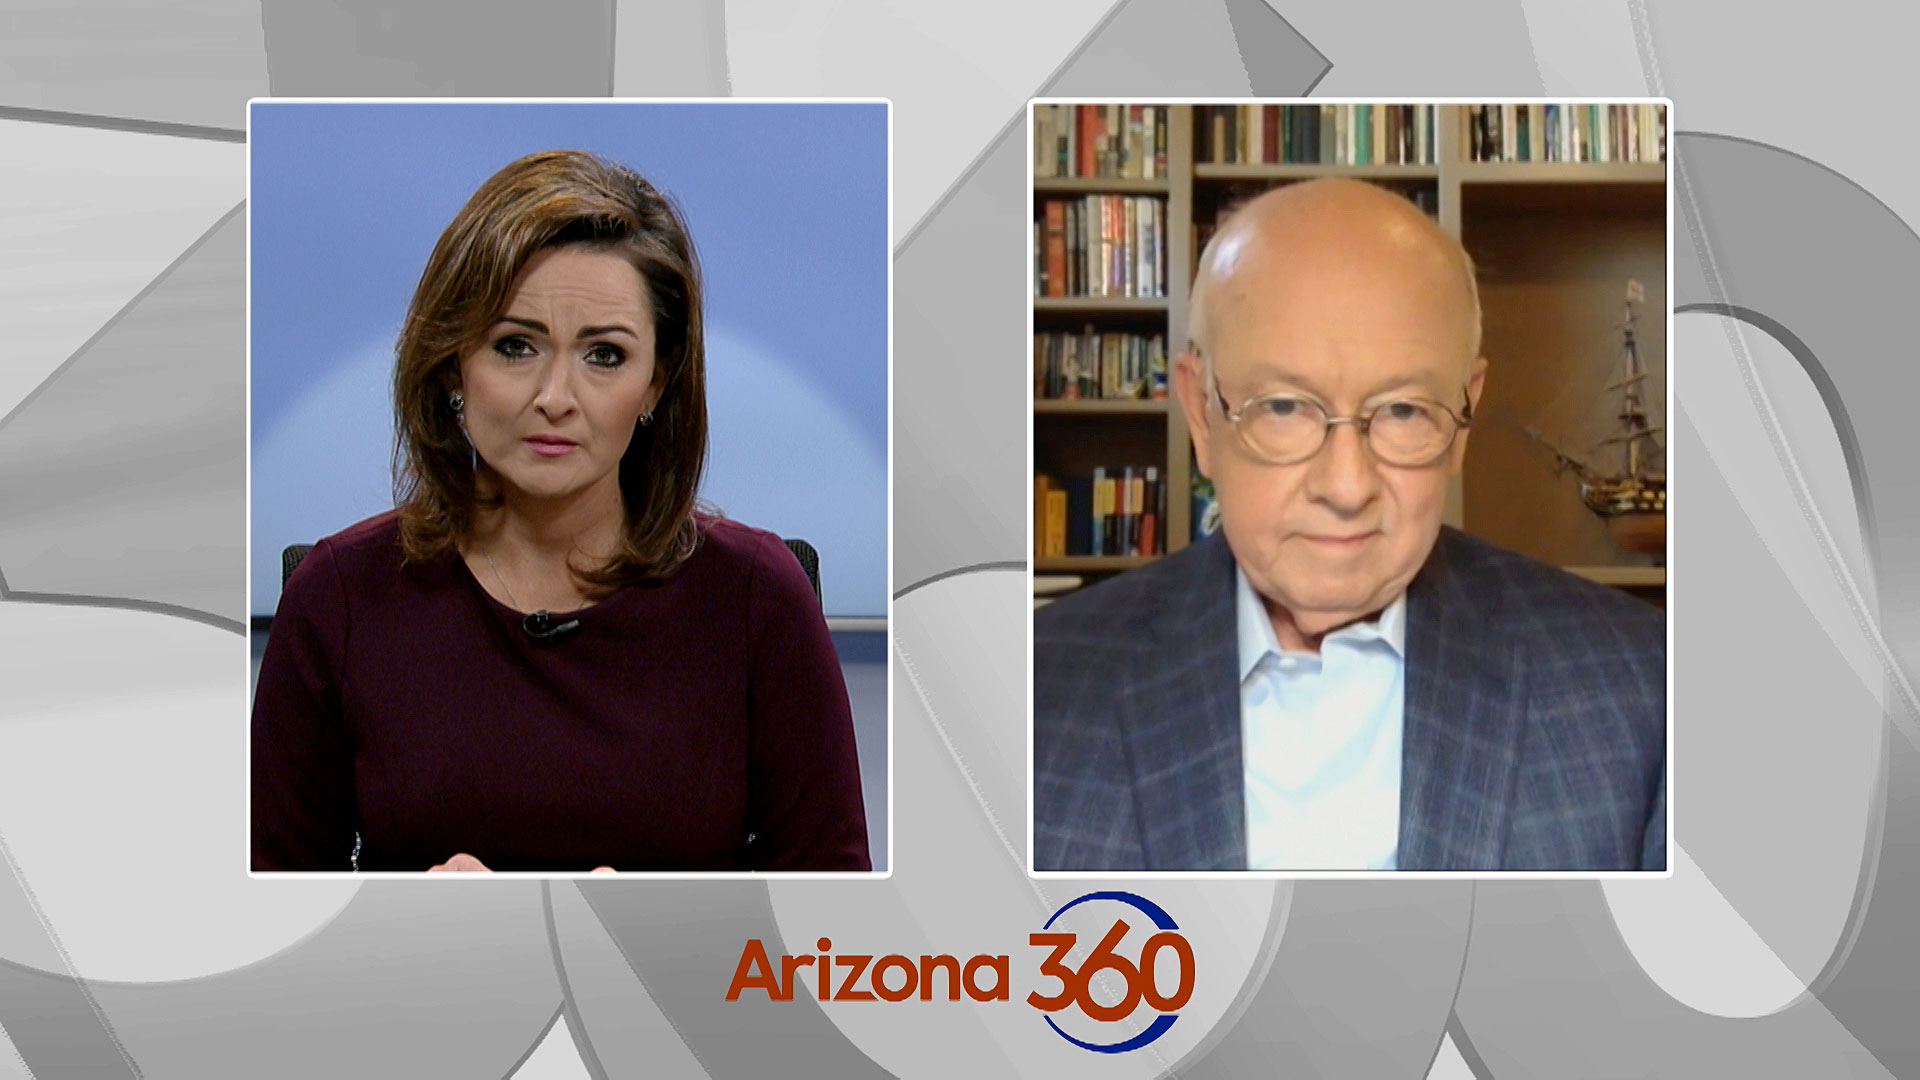 Arizona 360 host Lorraine Rivera interviews Arizona Board of Supervisor Chair Larry Penley over Zoom on July 28, 2020.